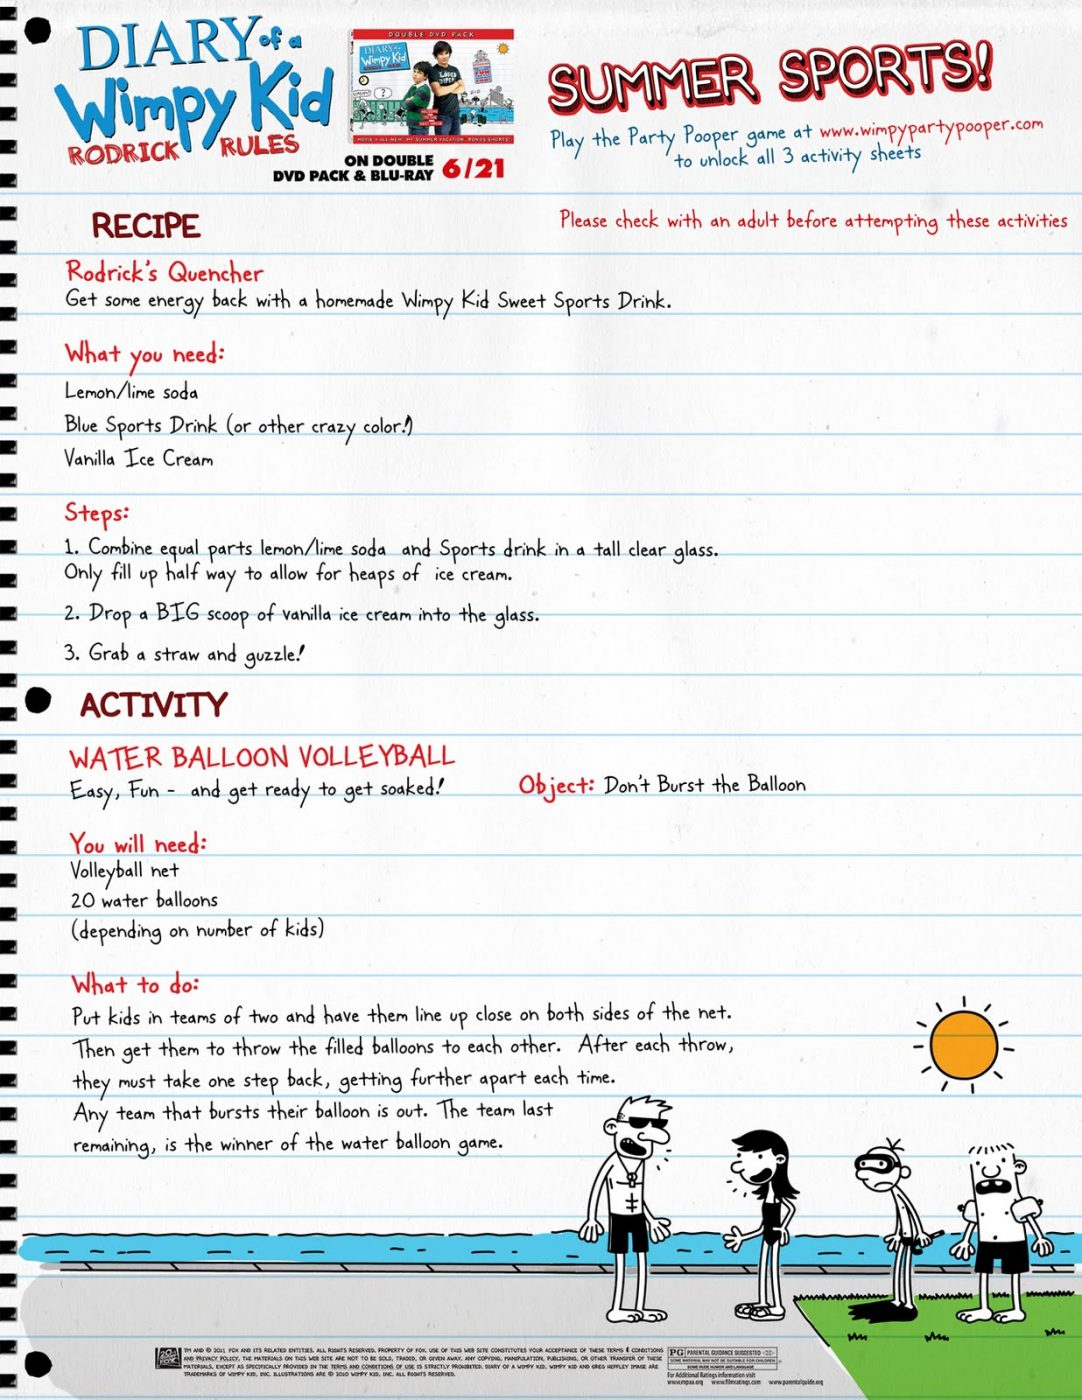 picture about Diary of a Wimpy Kid Printable identified as Diary of a Wimpy Little one: Rodrick Regulations + Printable Routines